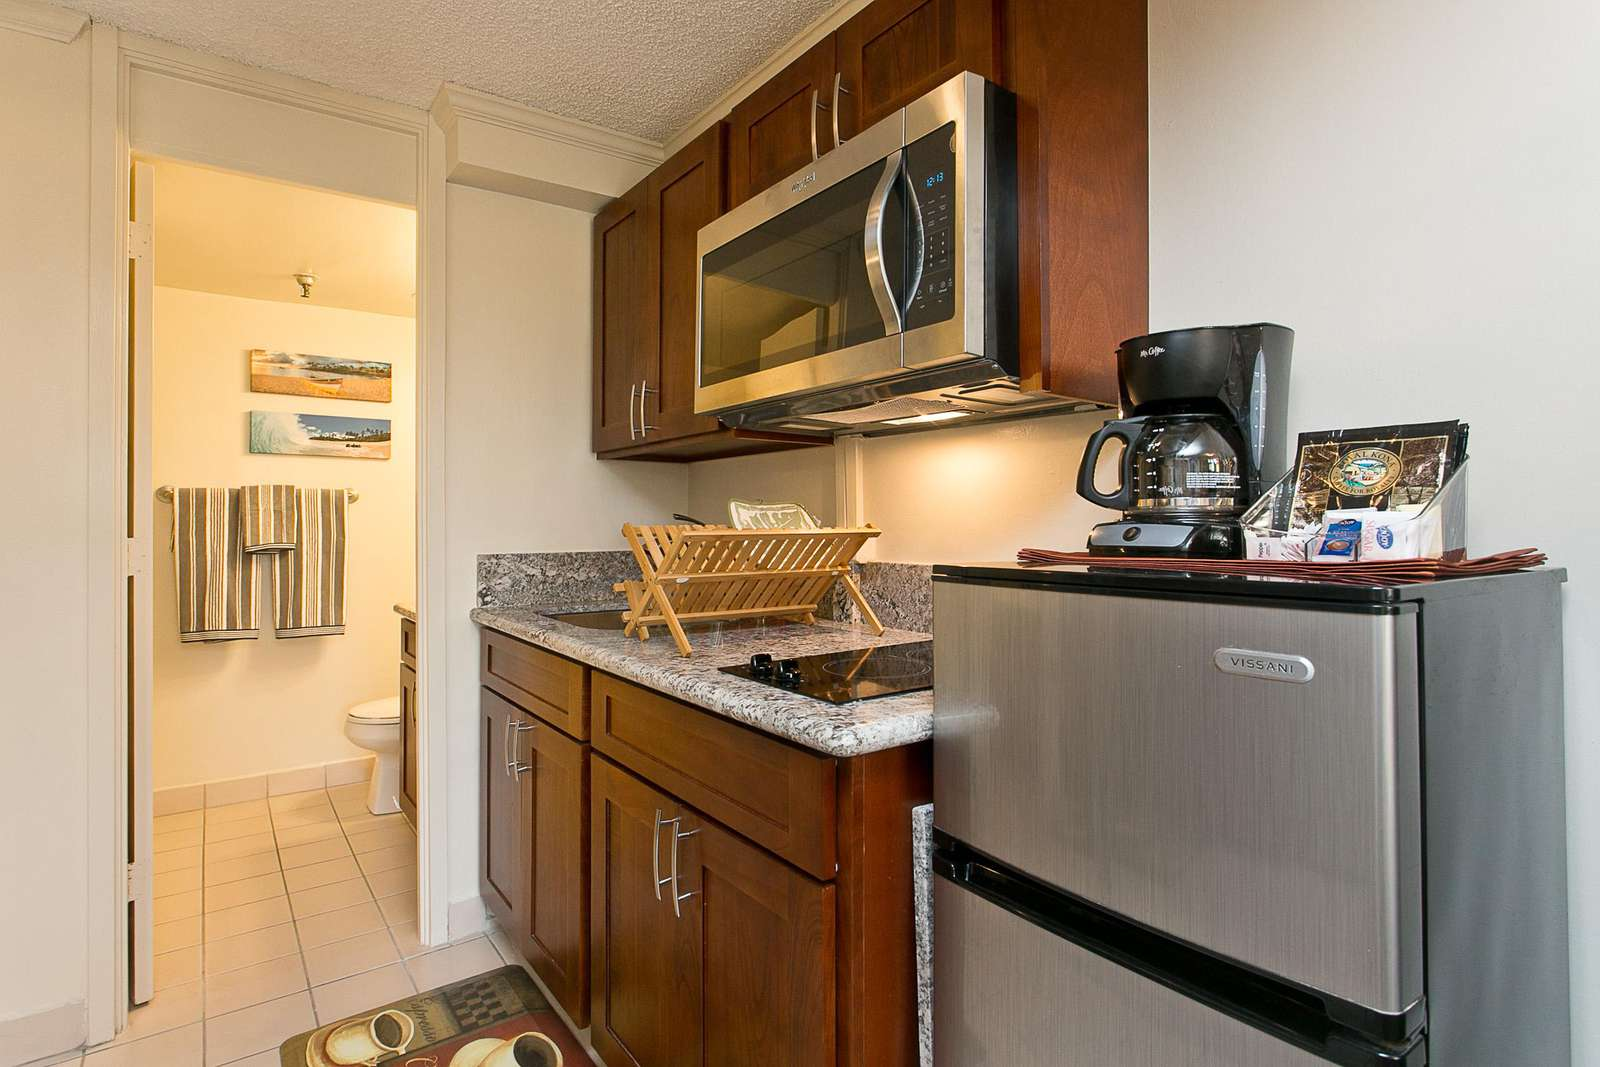 Practical & Clean Kitchenette Area